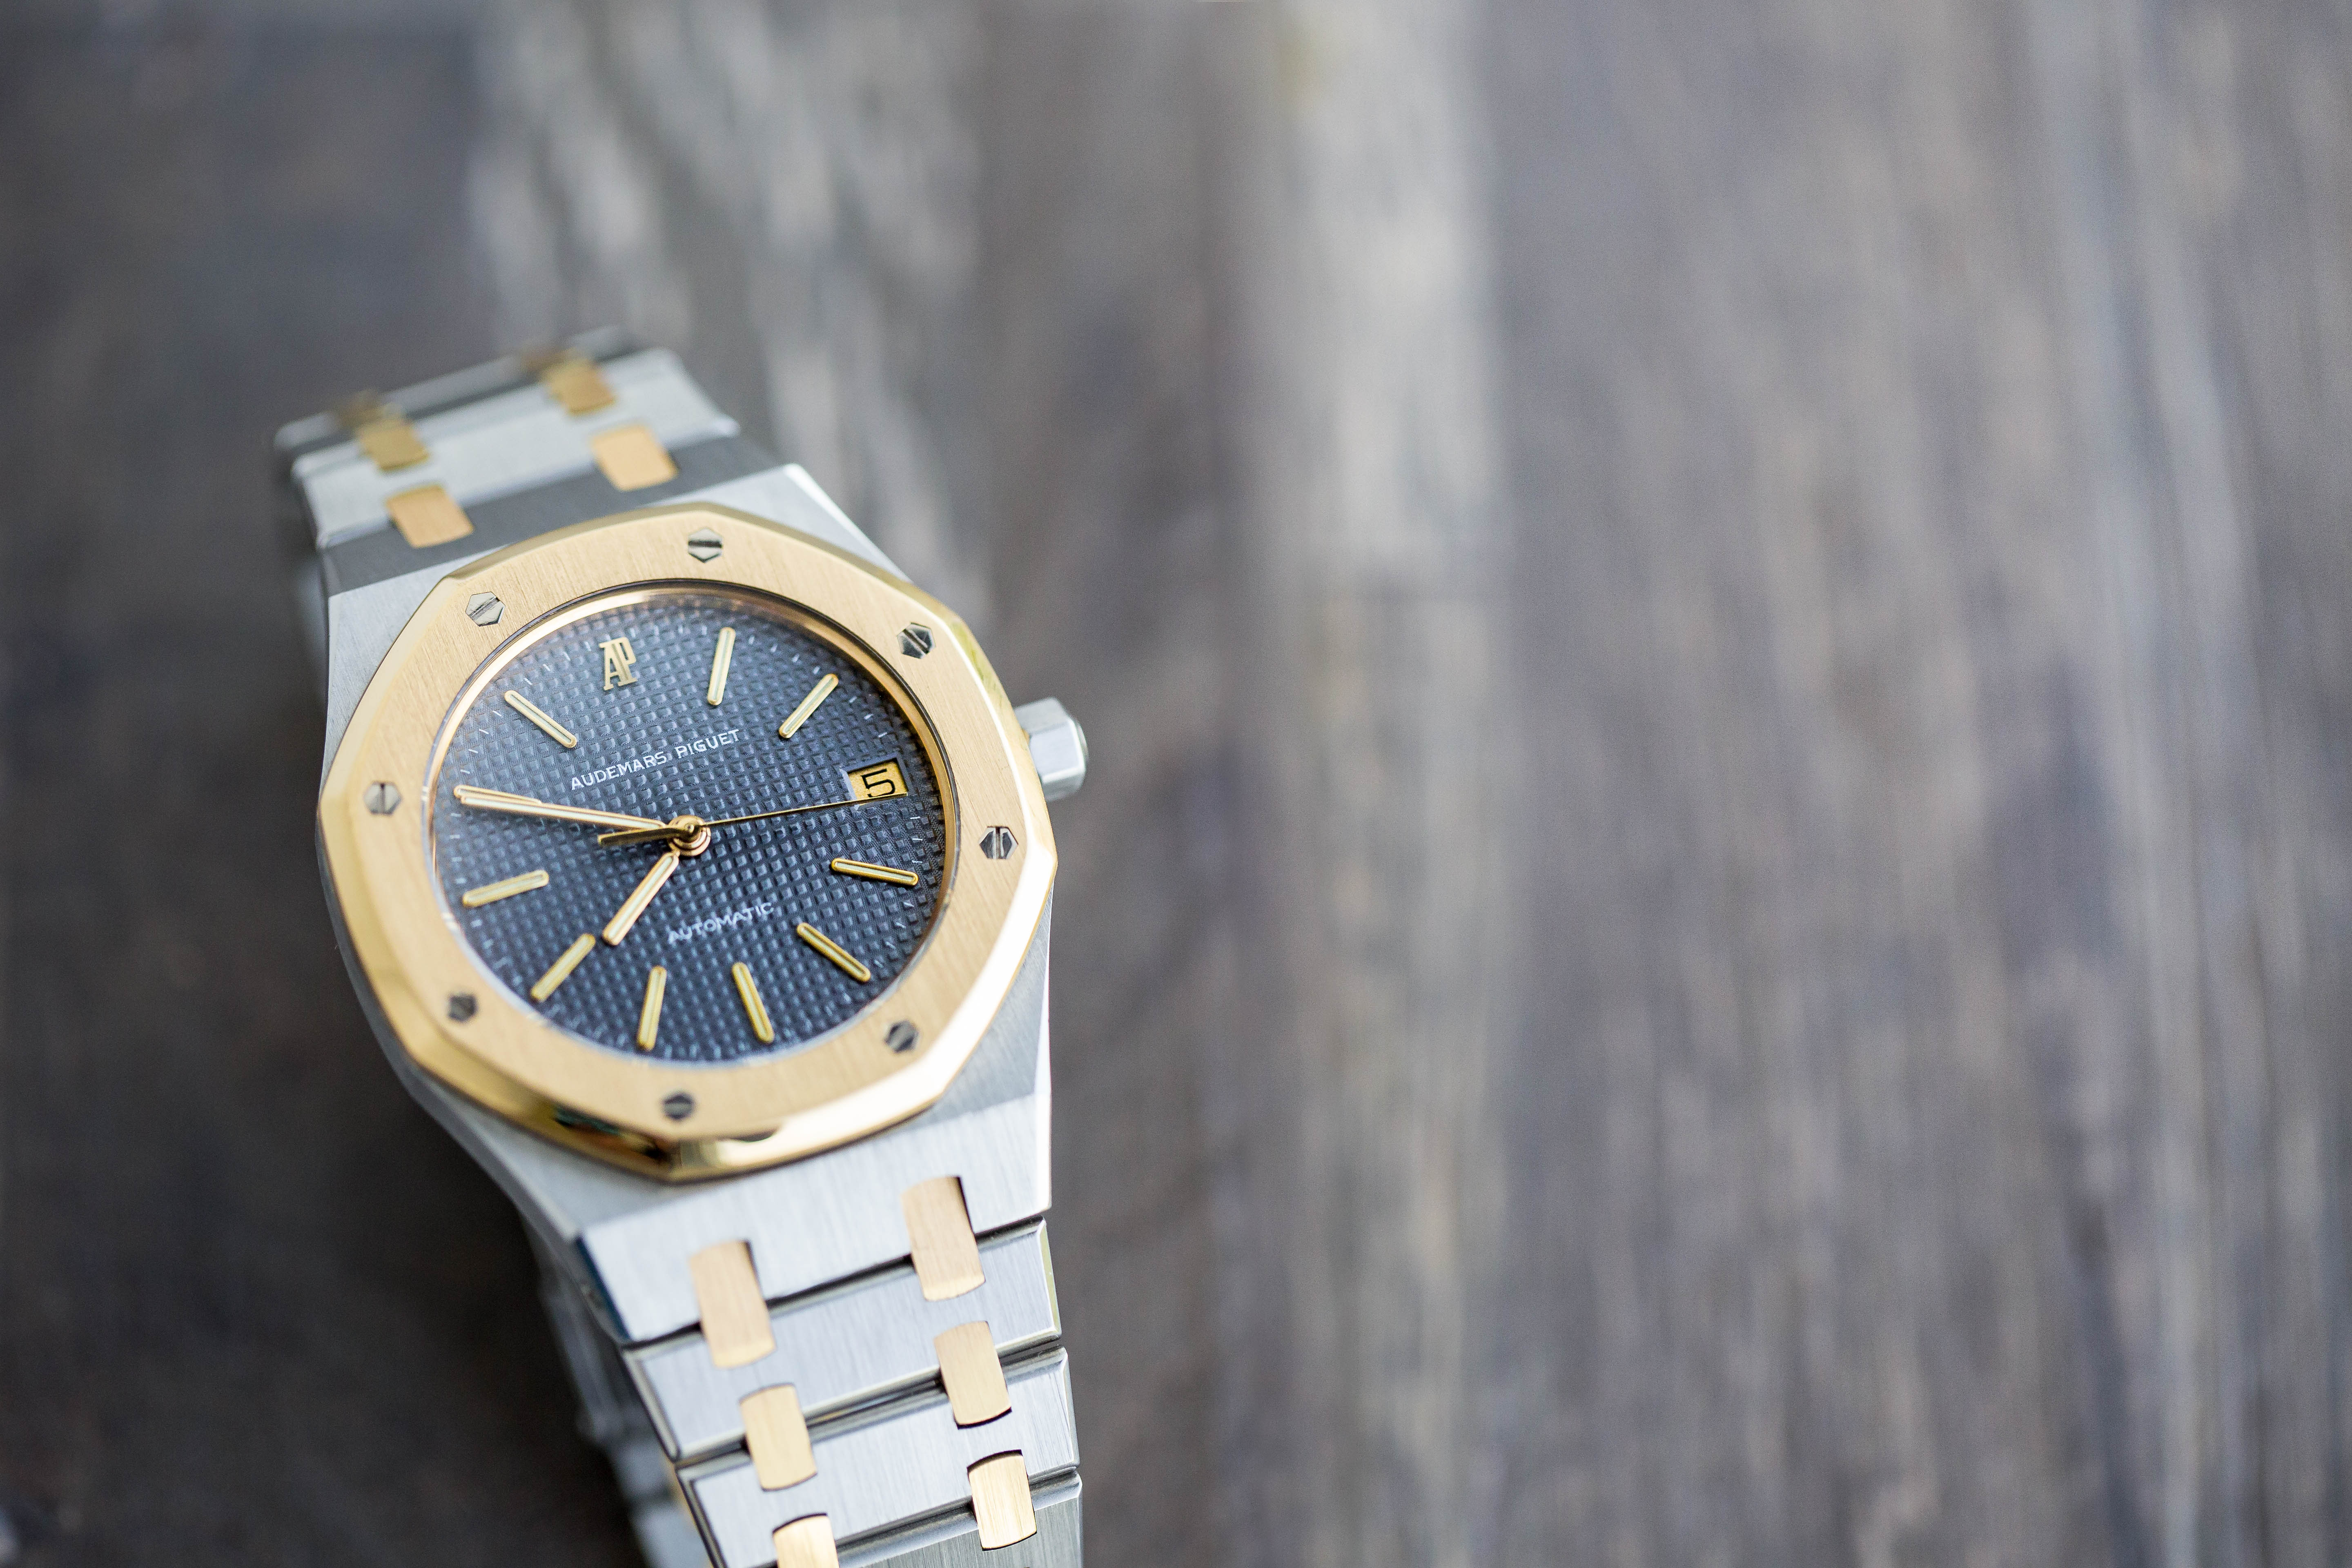 Take A Look At the Swiss Made Audemars Piguet Replica Watches